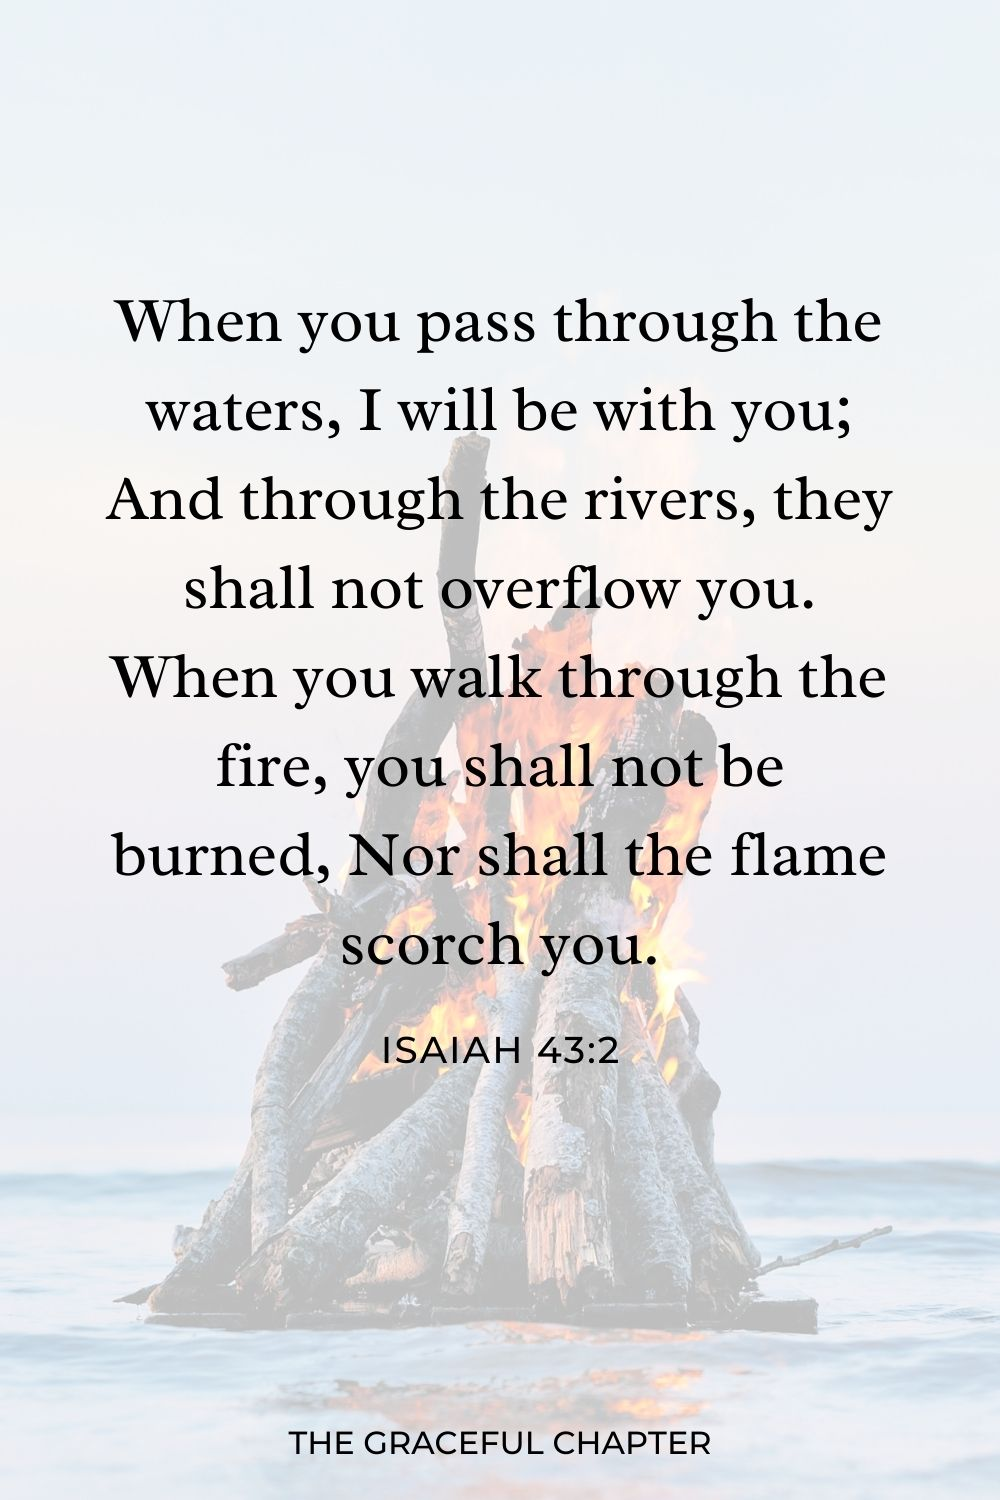 When you pass through the waters, I will be with you; And through the rivers, they shall not overflow you. When you walk through the fire, you shall not be burned, Nor shall the flame scorch you. Isaiah 43:2